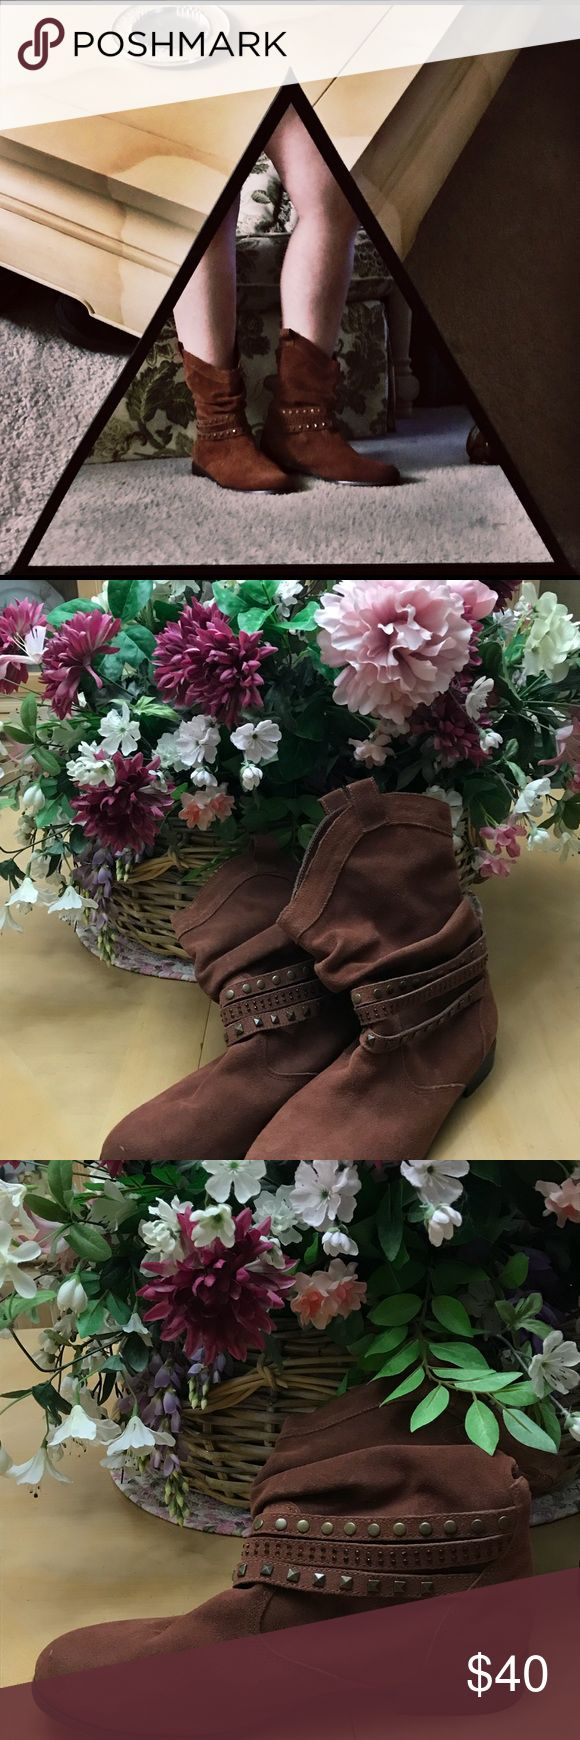 EXCLUSIVE 9 1/2 Twiggy London Brown Suede Boots 👢 ONLY AVALIBLE UNTIL SATURDAY 11/25!!! Twiggy London brand Brown suede boots. Barely worn and in great condition. Size 9 1/2. twiggy LONDON Shoes Ankle Boots & Booties